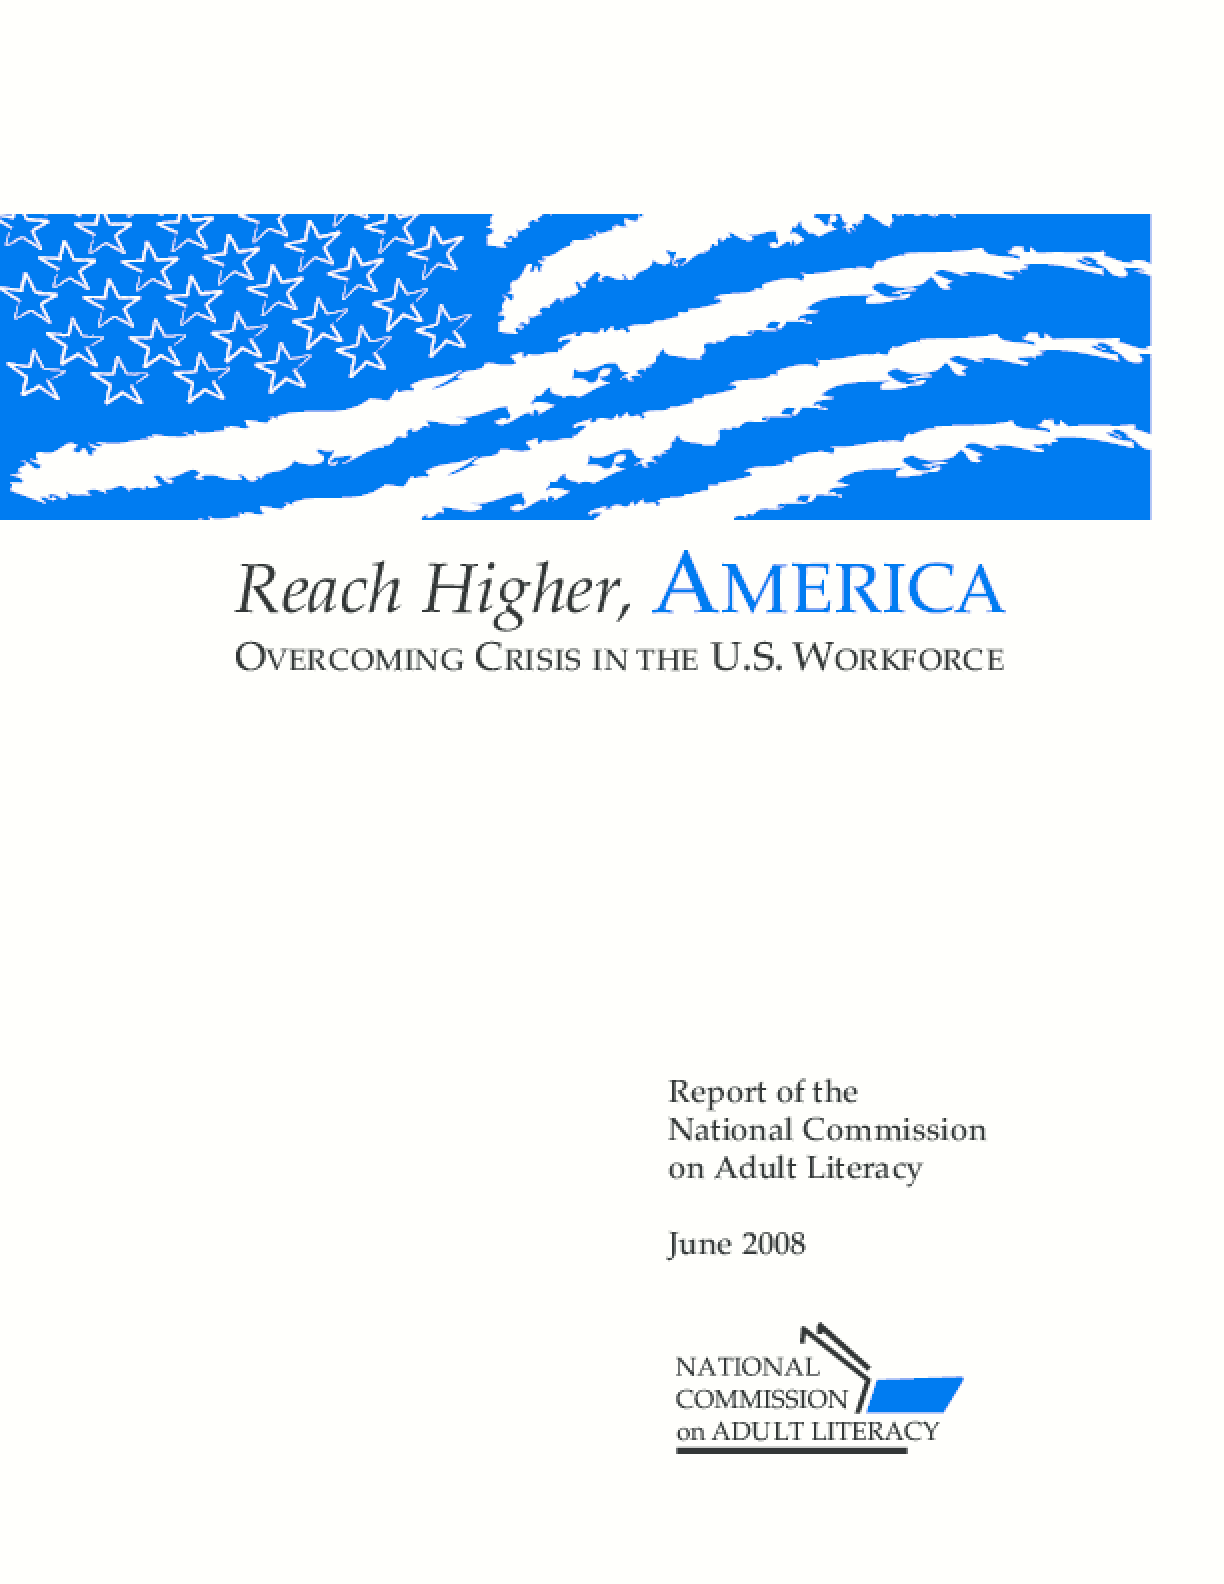 Reach Higher, America: Overcoming Crisis in the U.S. Workforce